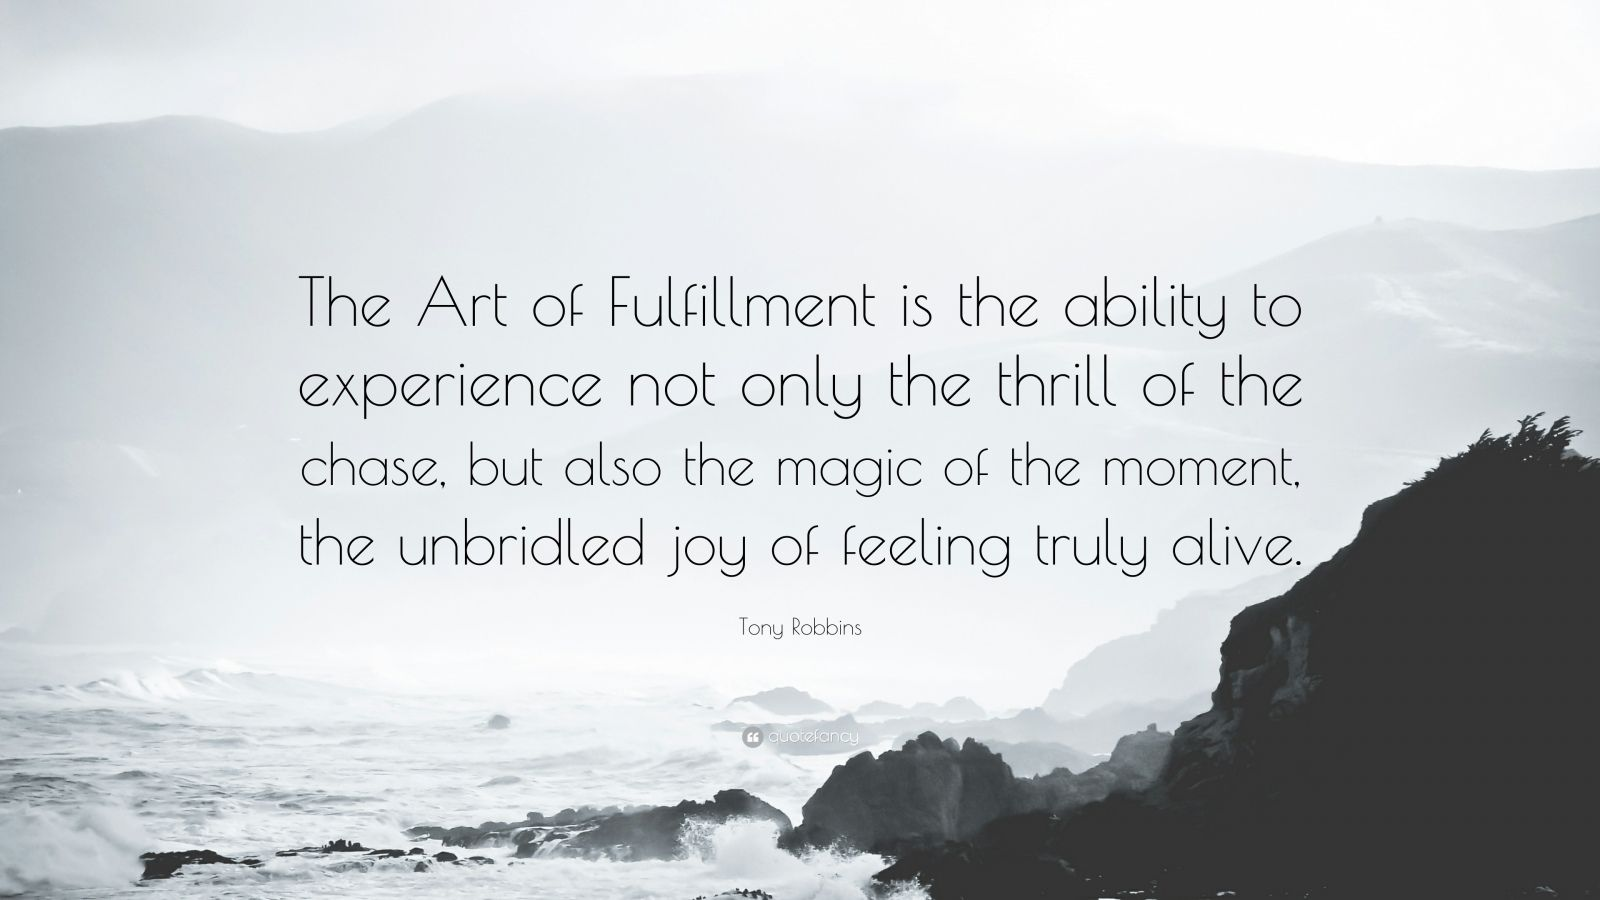 "Tony Robbins Quote: ""The Art of Fulfillment is the ability to experience not only the thrill of the chase, but also the magic of the moment, the unbridled joy of feeling truly alive."""